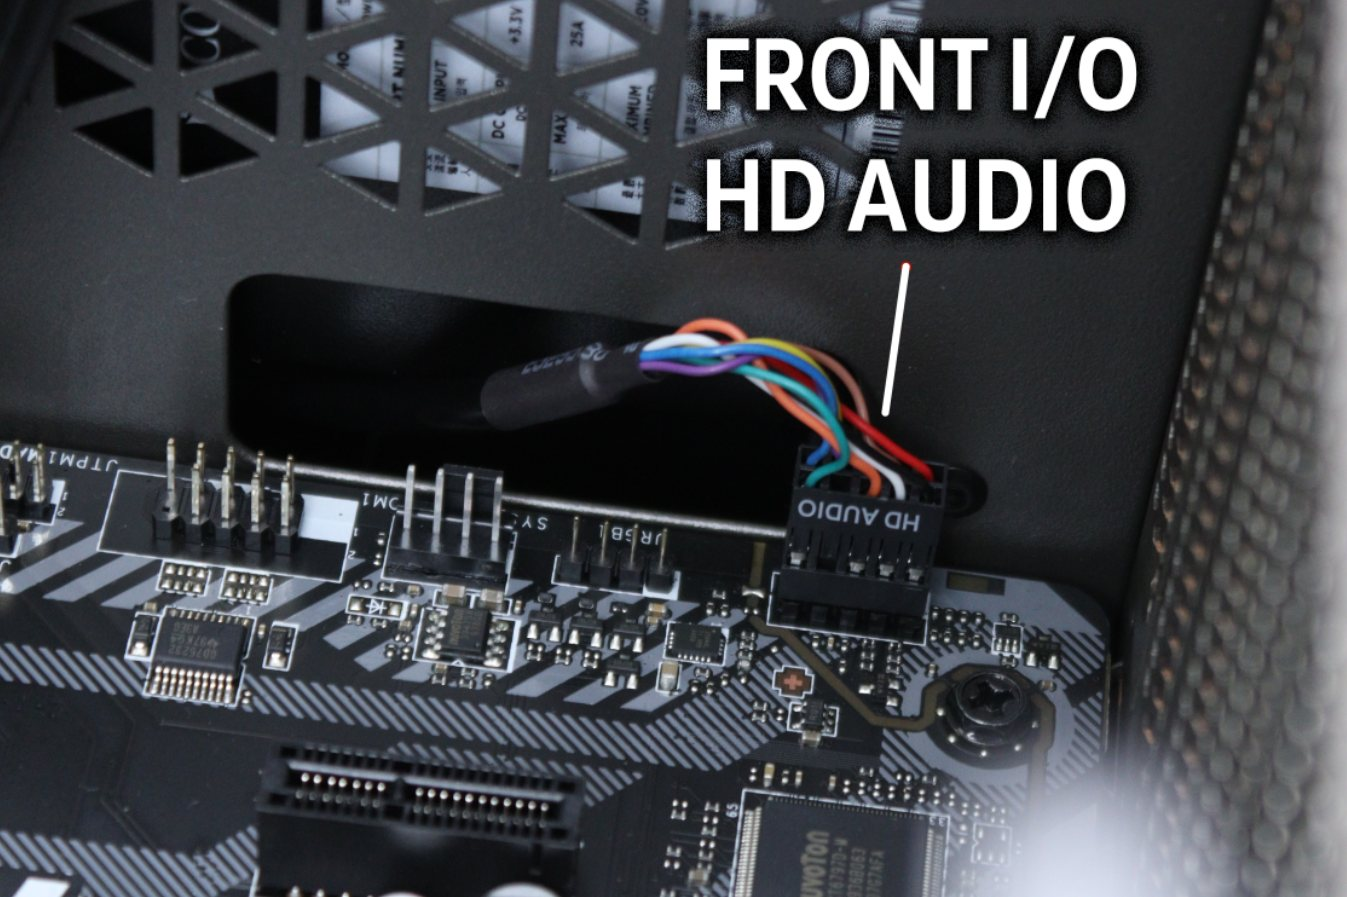 Case Front I/O HD Audio Connector